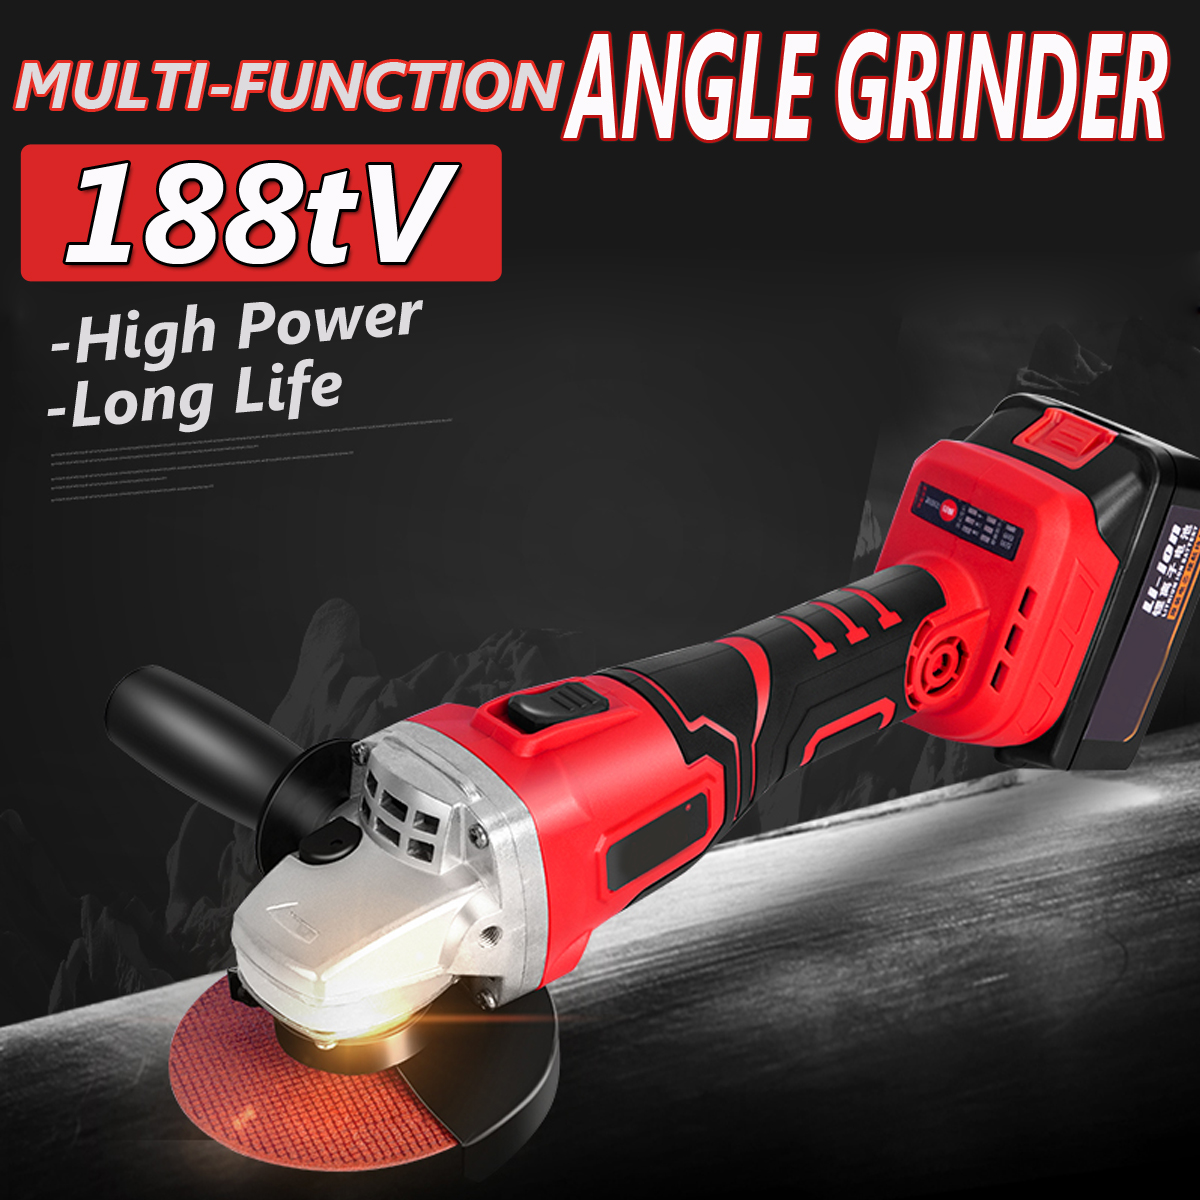 800W 42V Cordless Electric Angle Grinder Angle Grinding Machine Power Cutting Tool Set